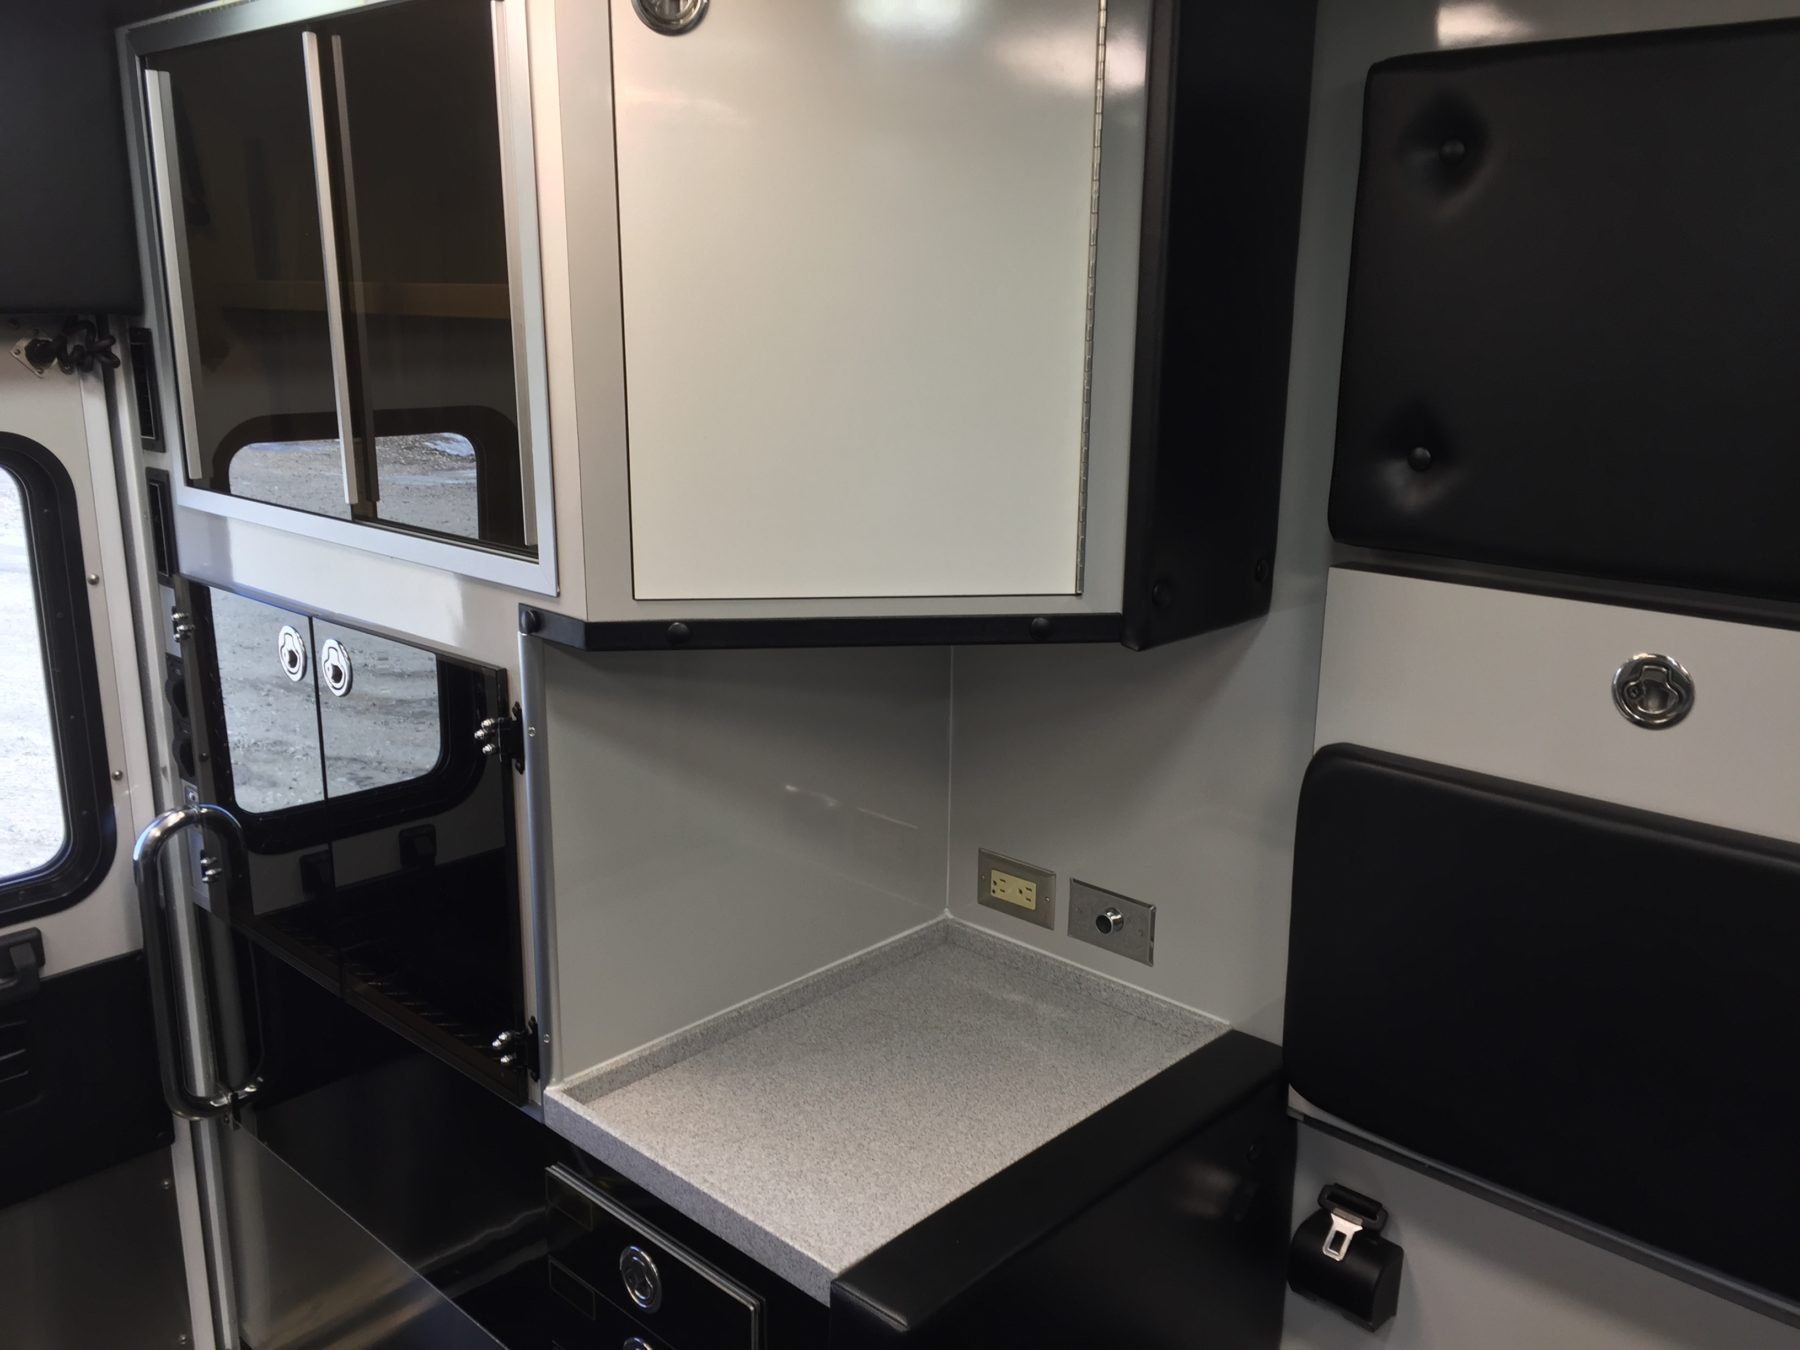 2017 Ram 4500 4x4 Heavy Duty Ambulance For Sale – Picture 18